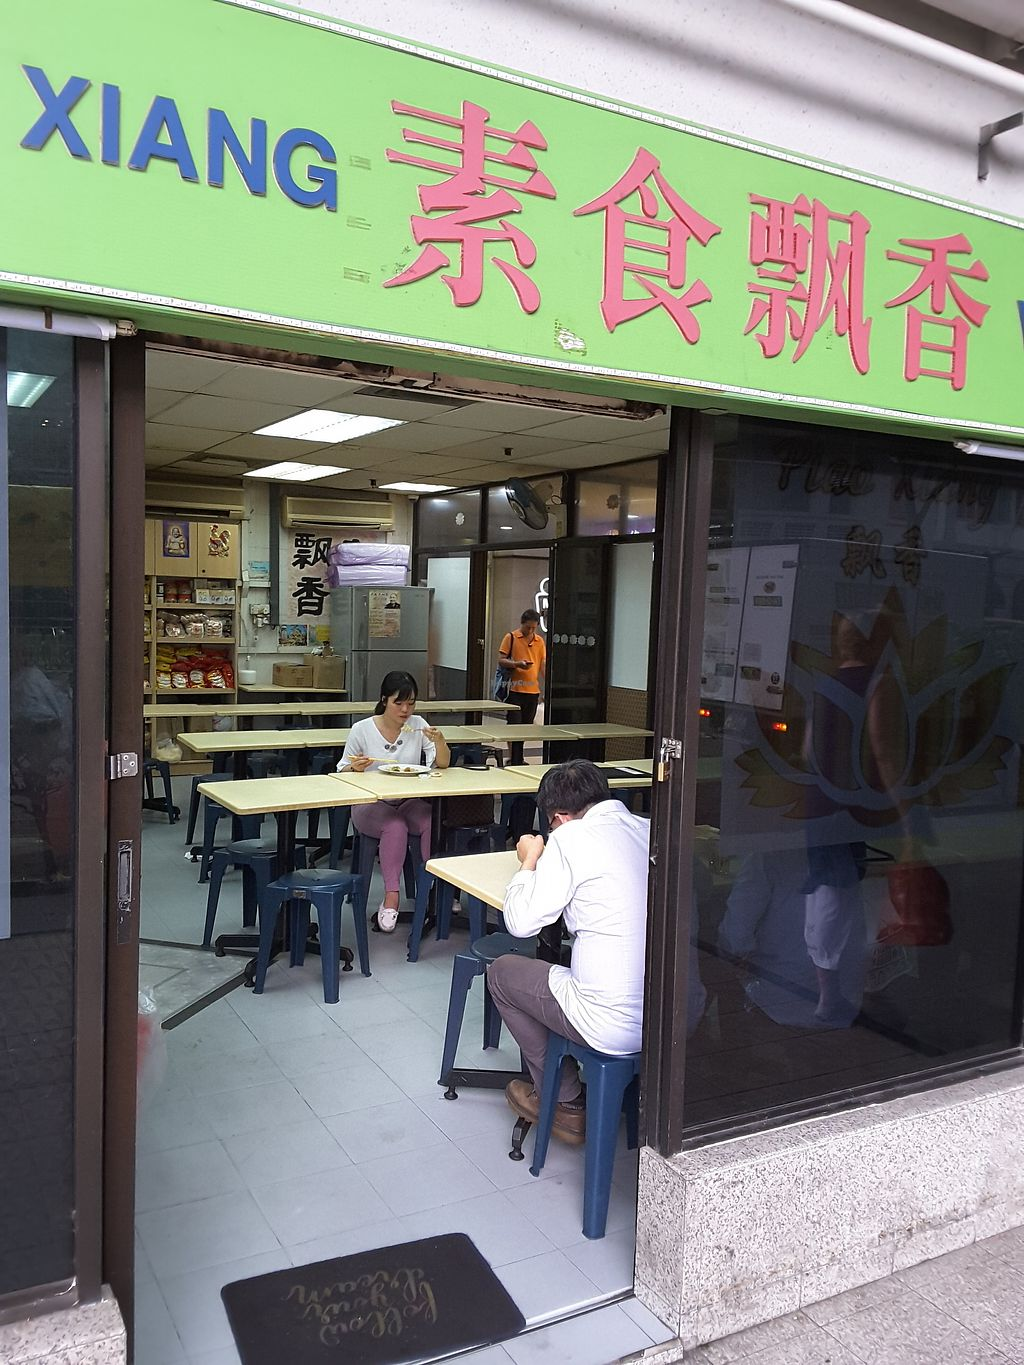 Photo of Su Shi Piao Xiang Vegetarian Food  by linrx <br/>Customers during off peak timings <br/> June 22, 2017  - <a href='/contact/abuse/image/236/272053'>Report</a>